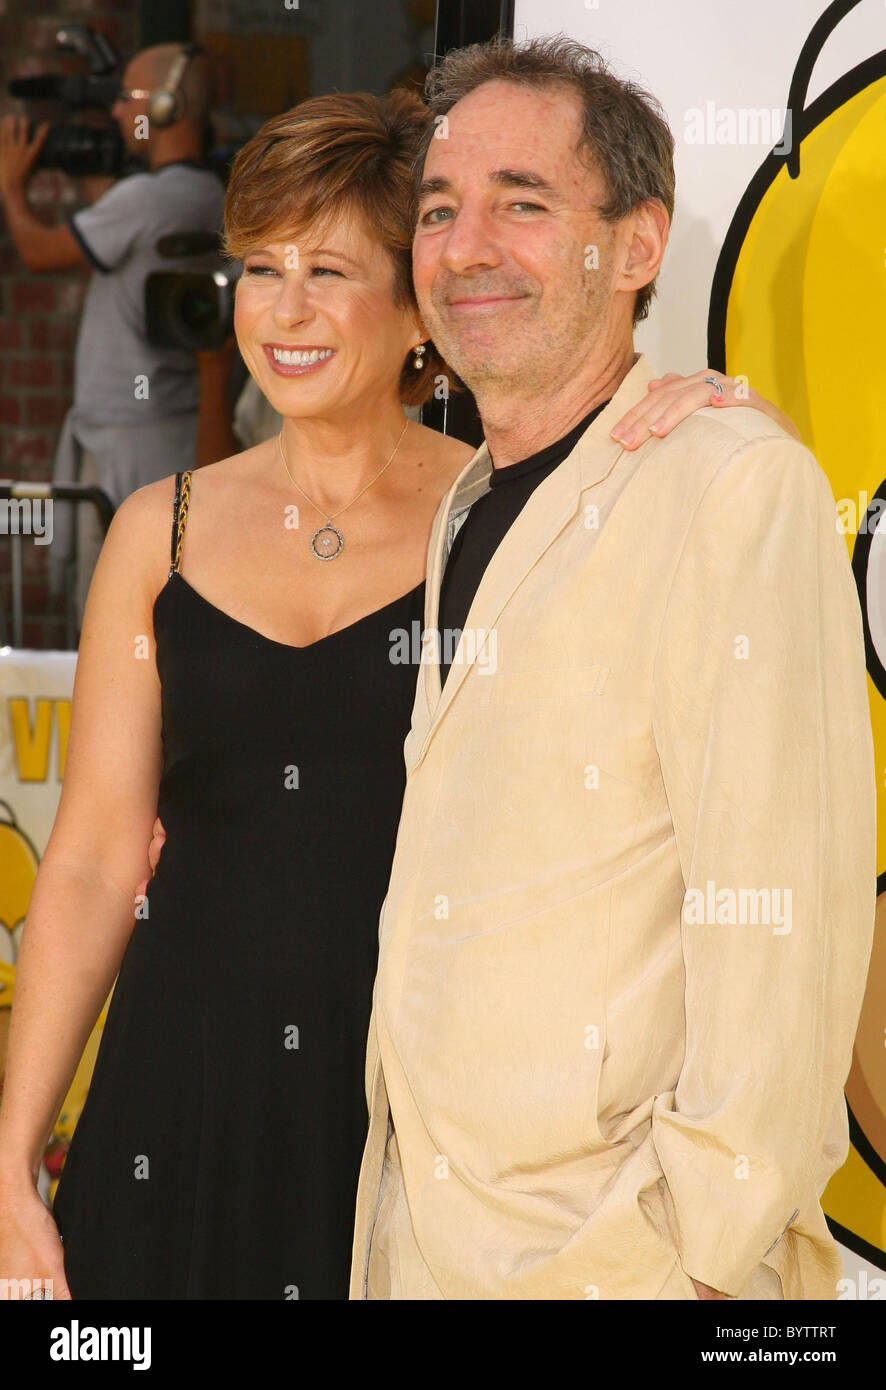 Yeardley Smith Voice Of Lisa Simpson And Harry Shearer The Stock Photo Alamy